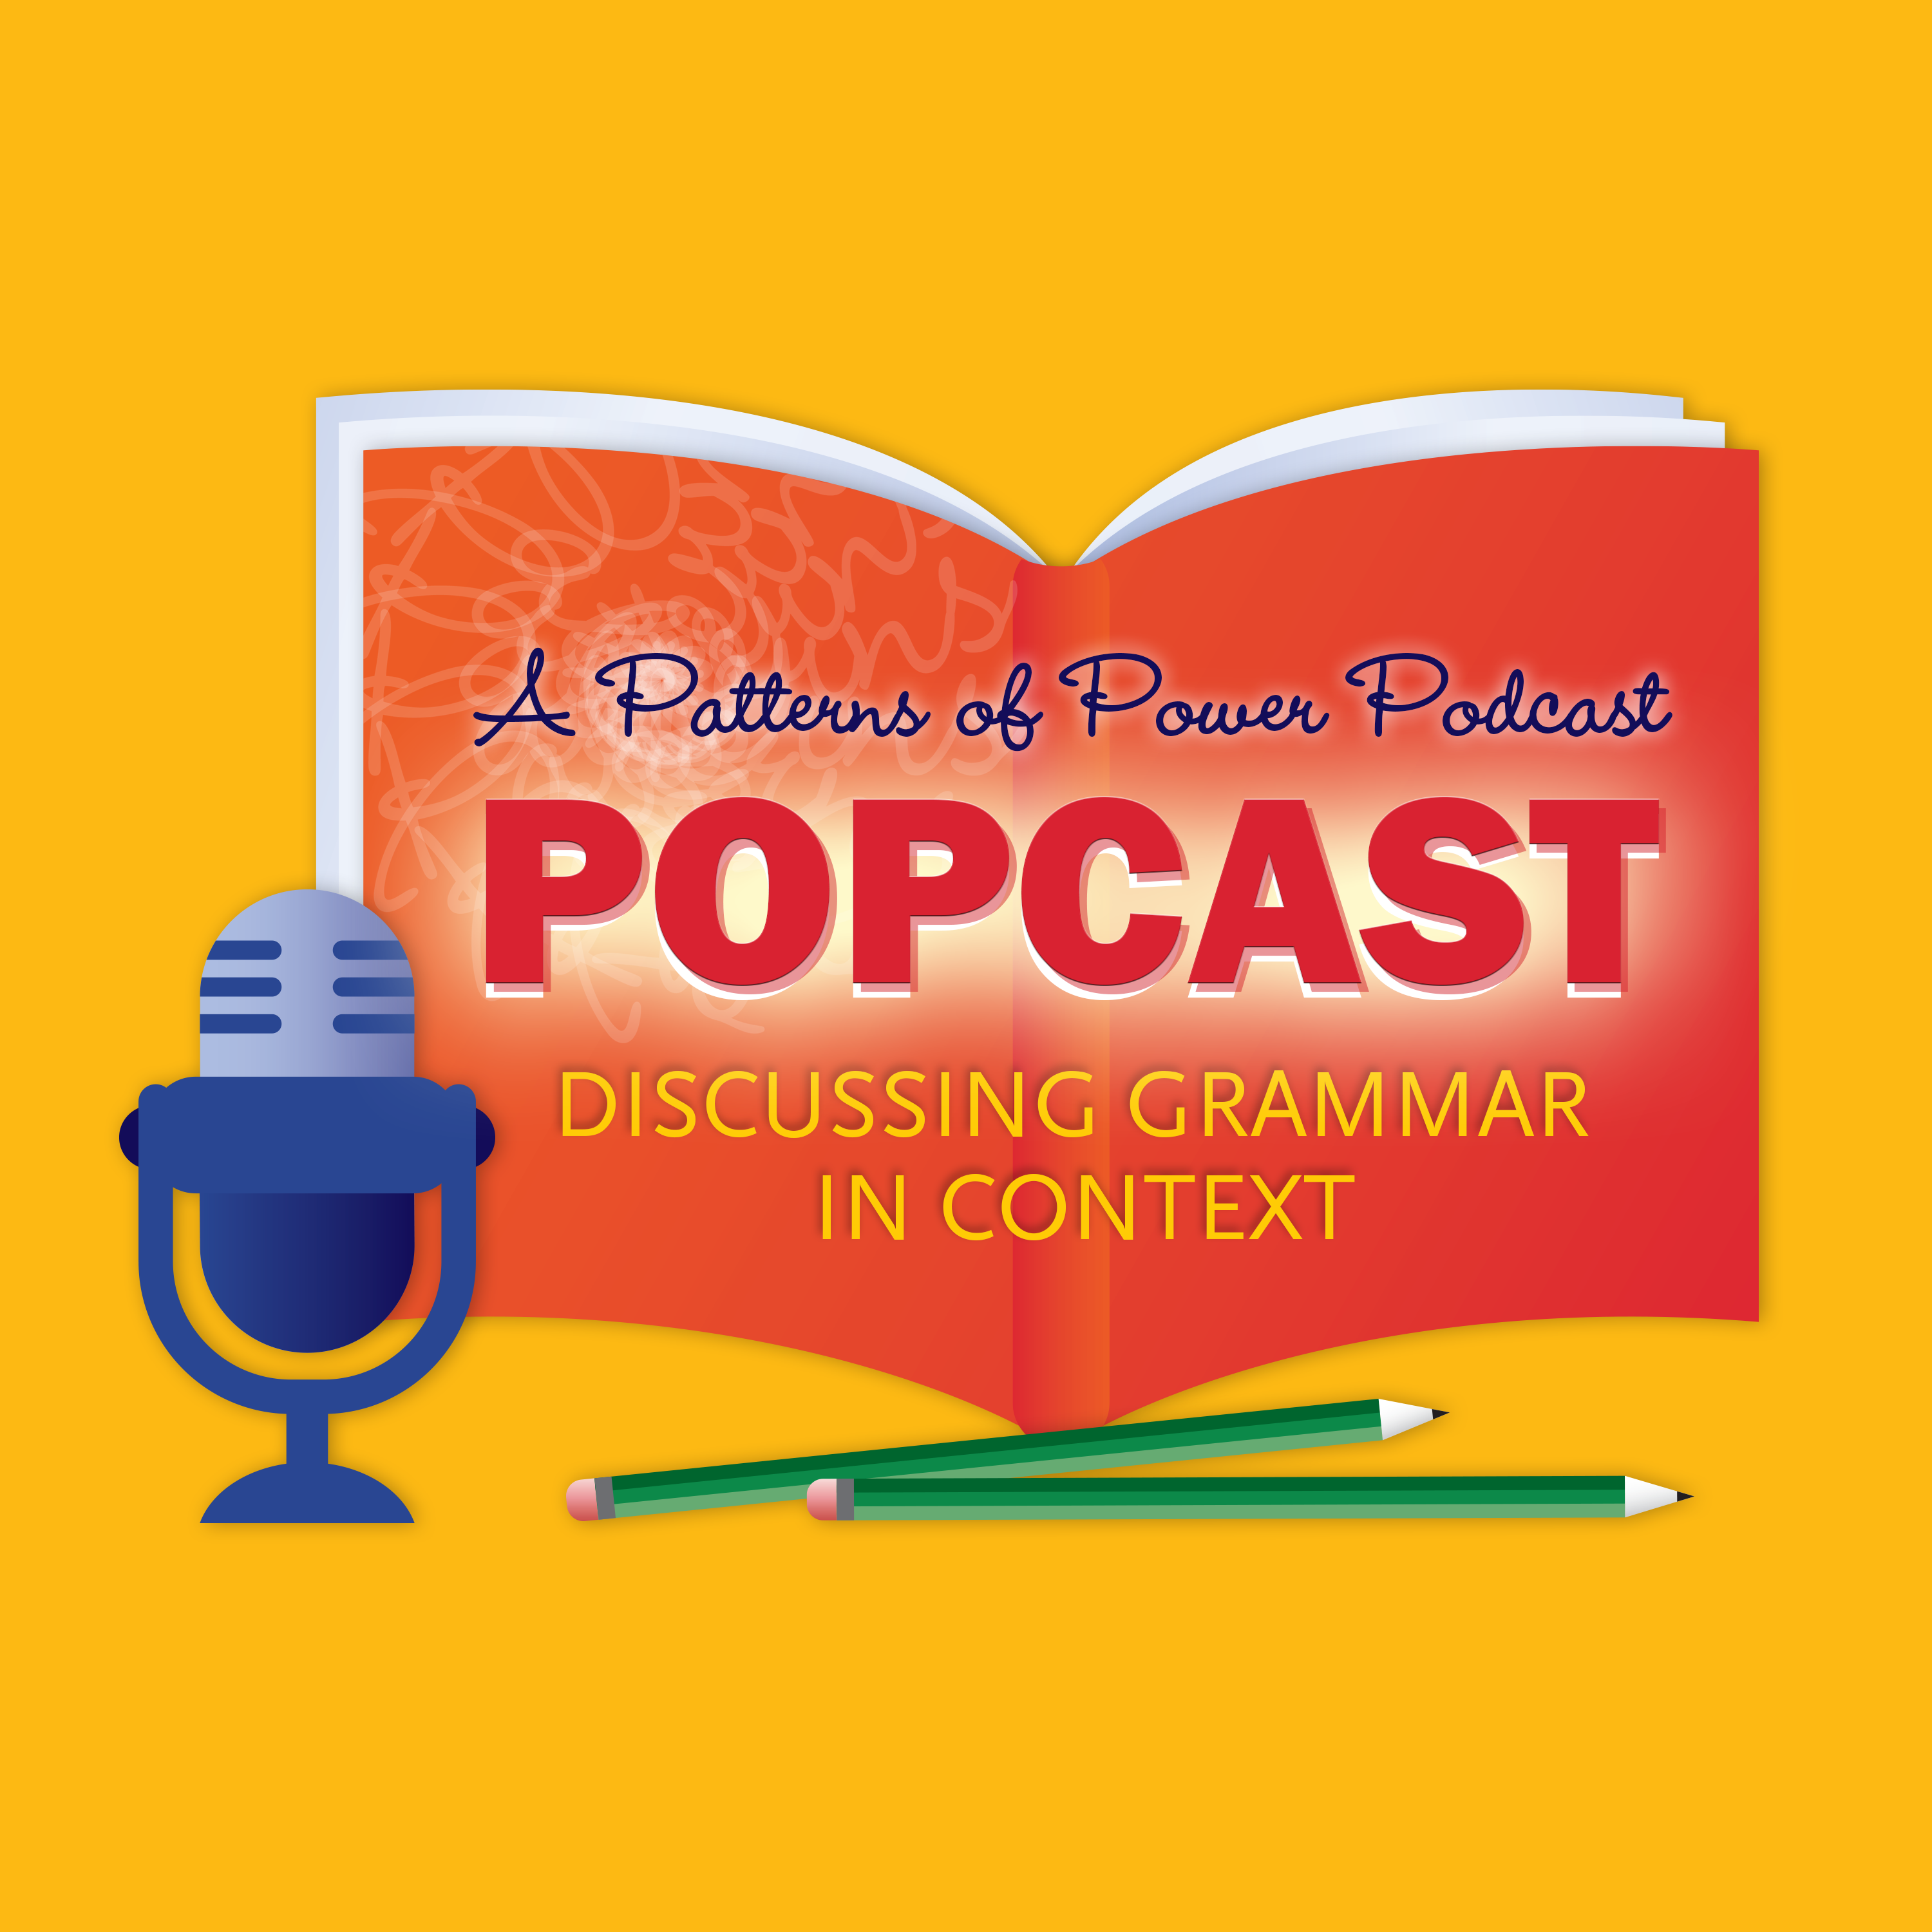 The POPCast: A Patterns of Power Podcast show art